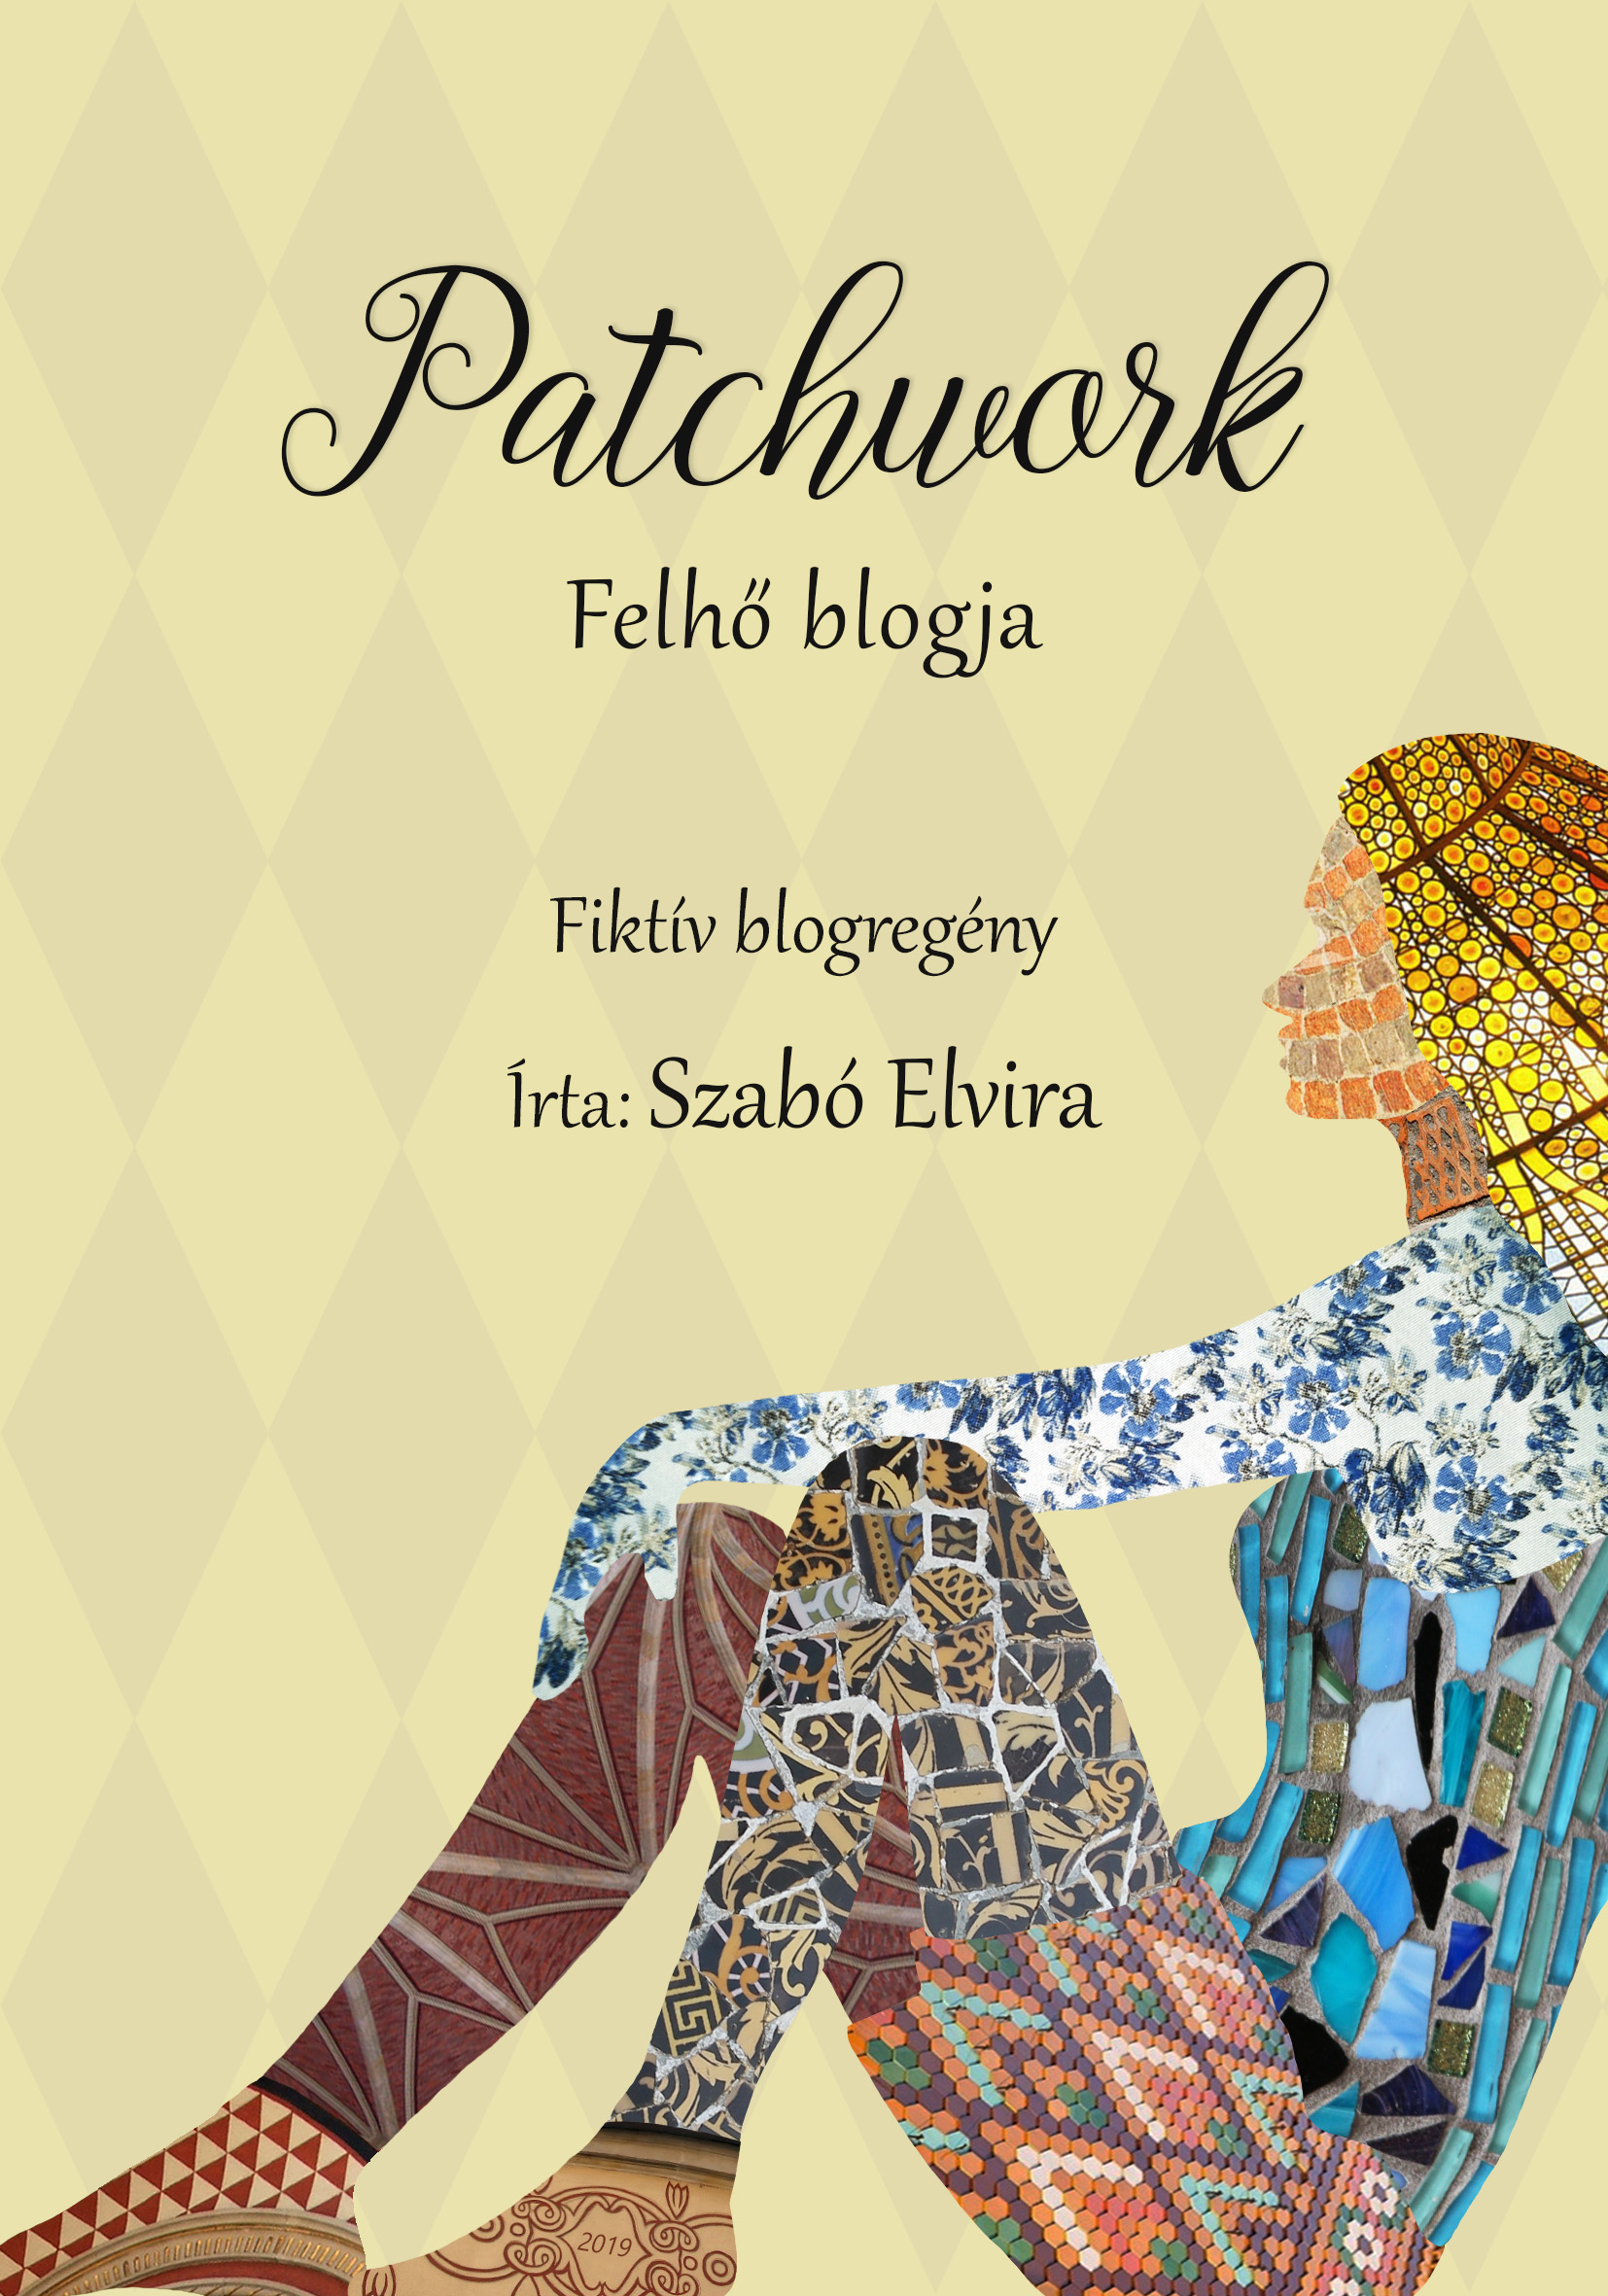 patchwork_cover_v5.jpg